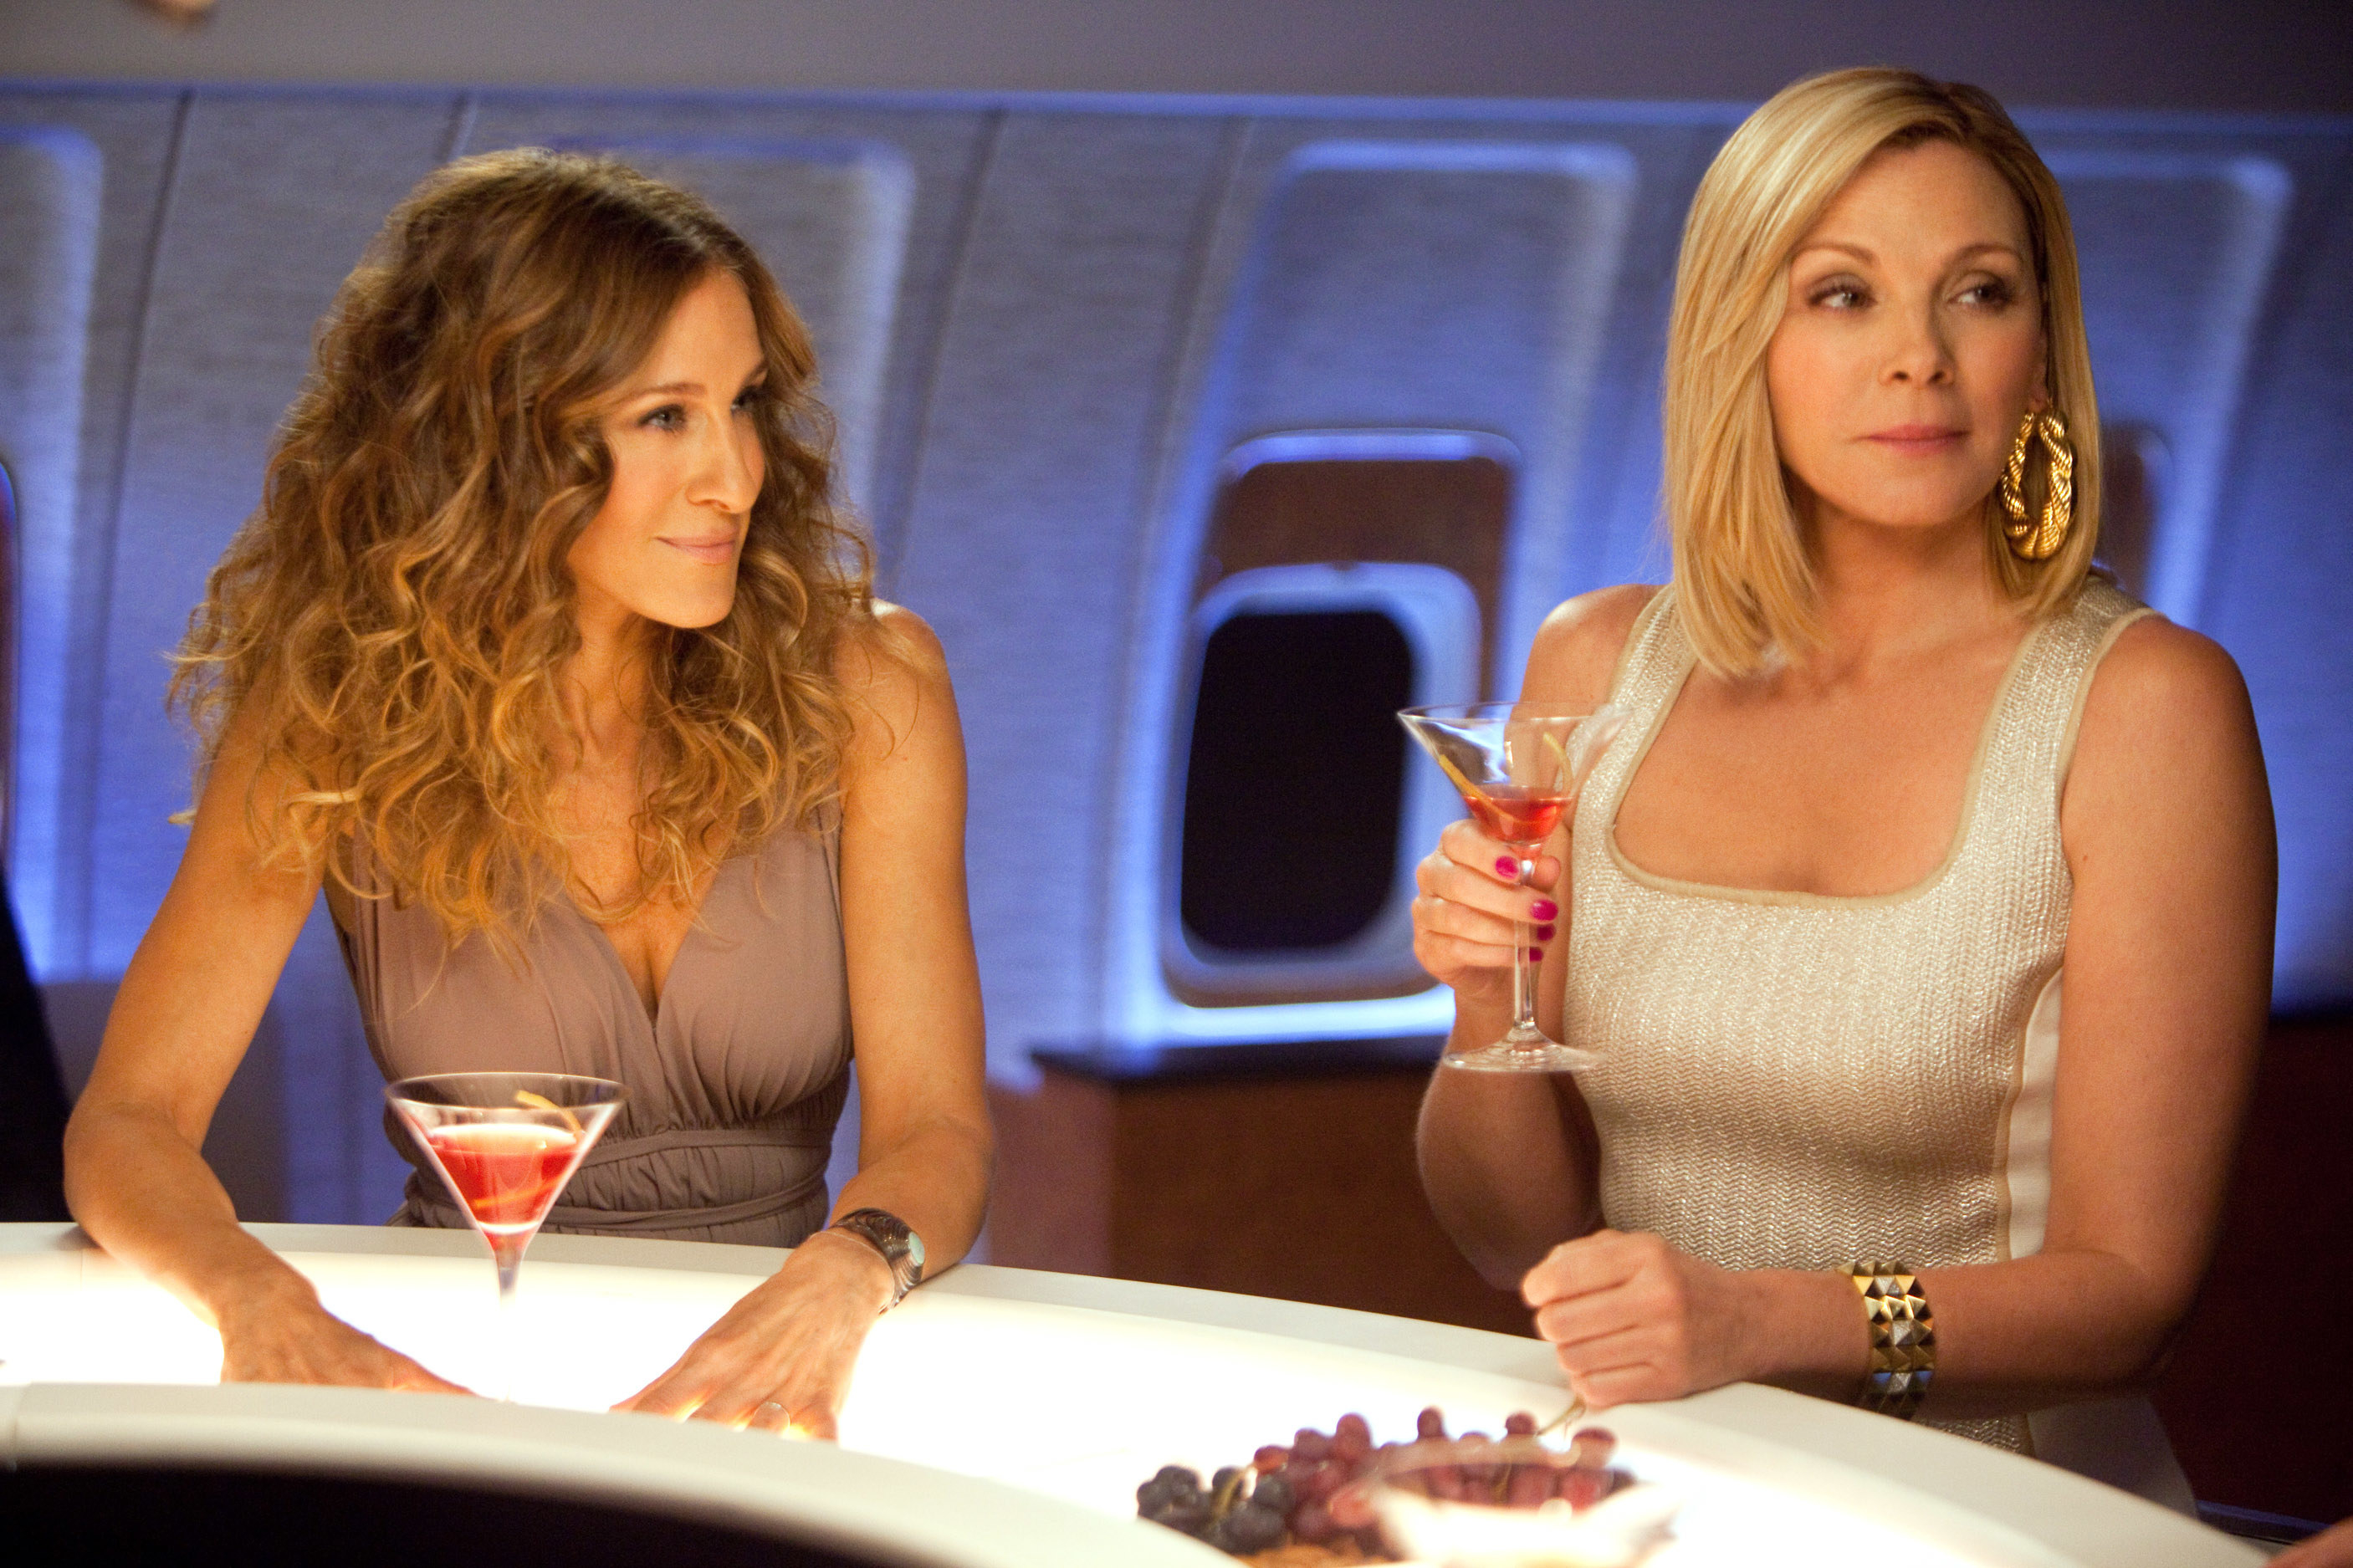 Carrie and Samantha drinking cosmos on an airplane